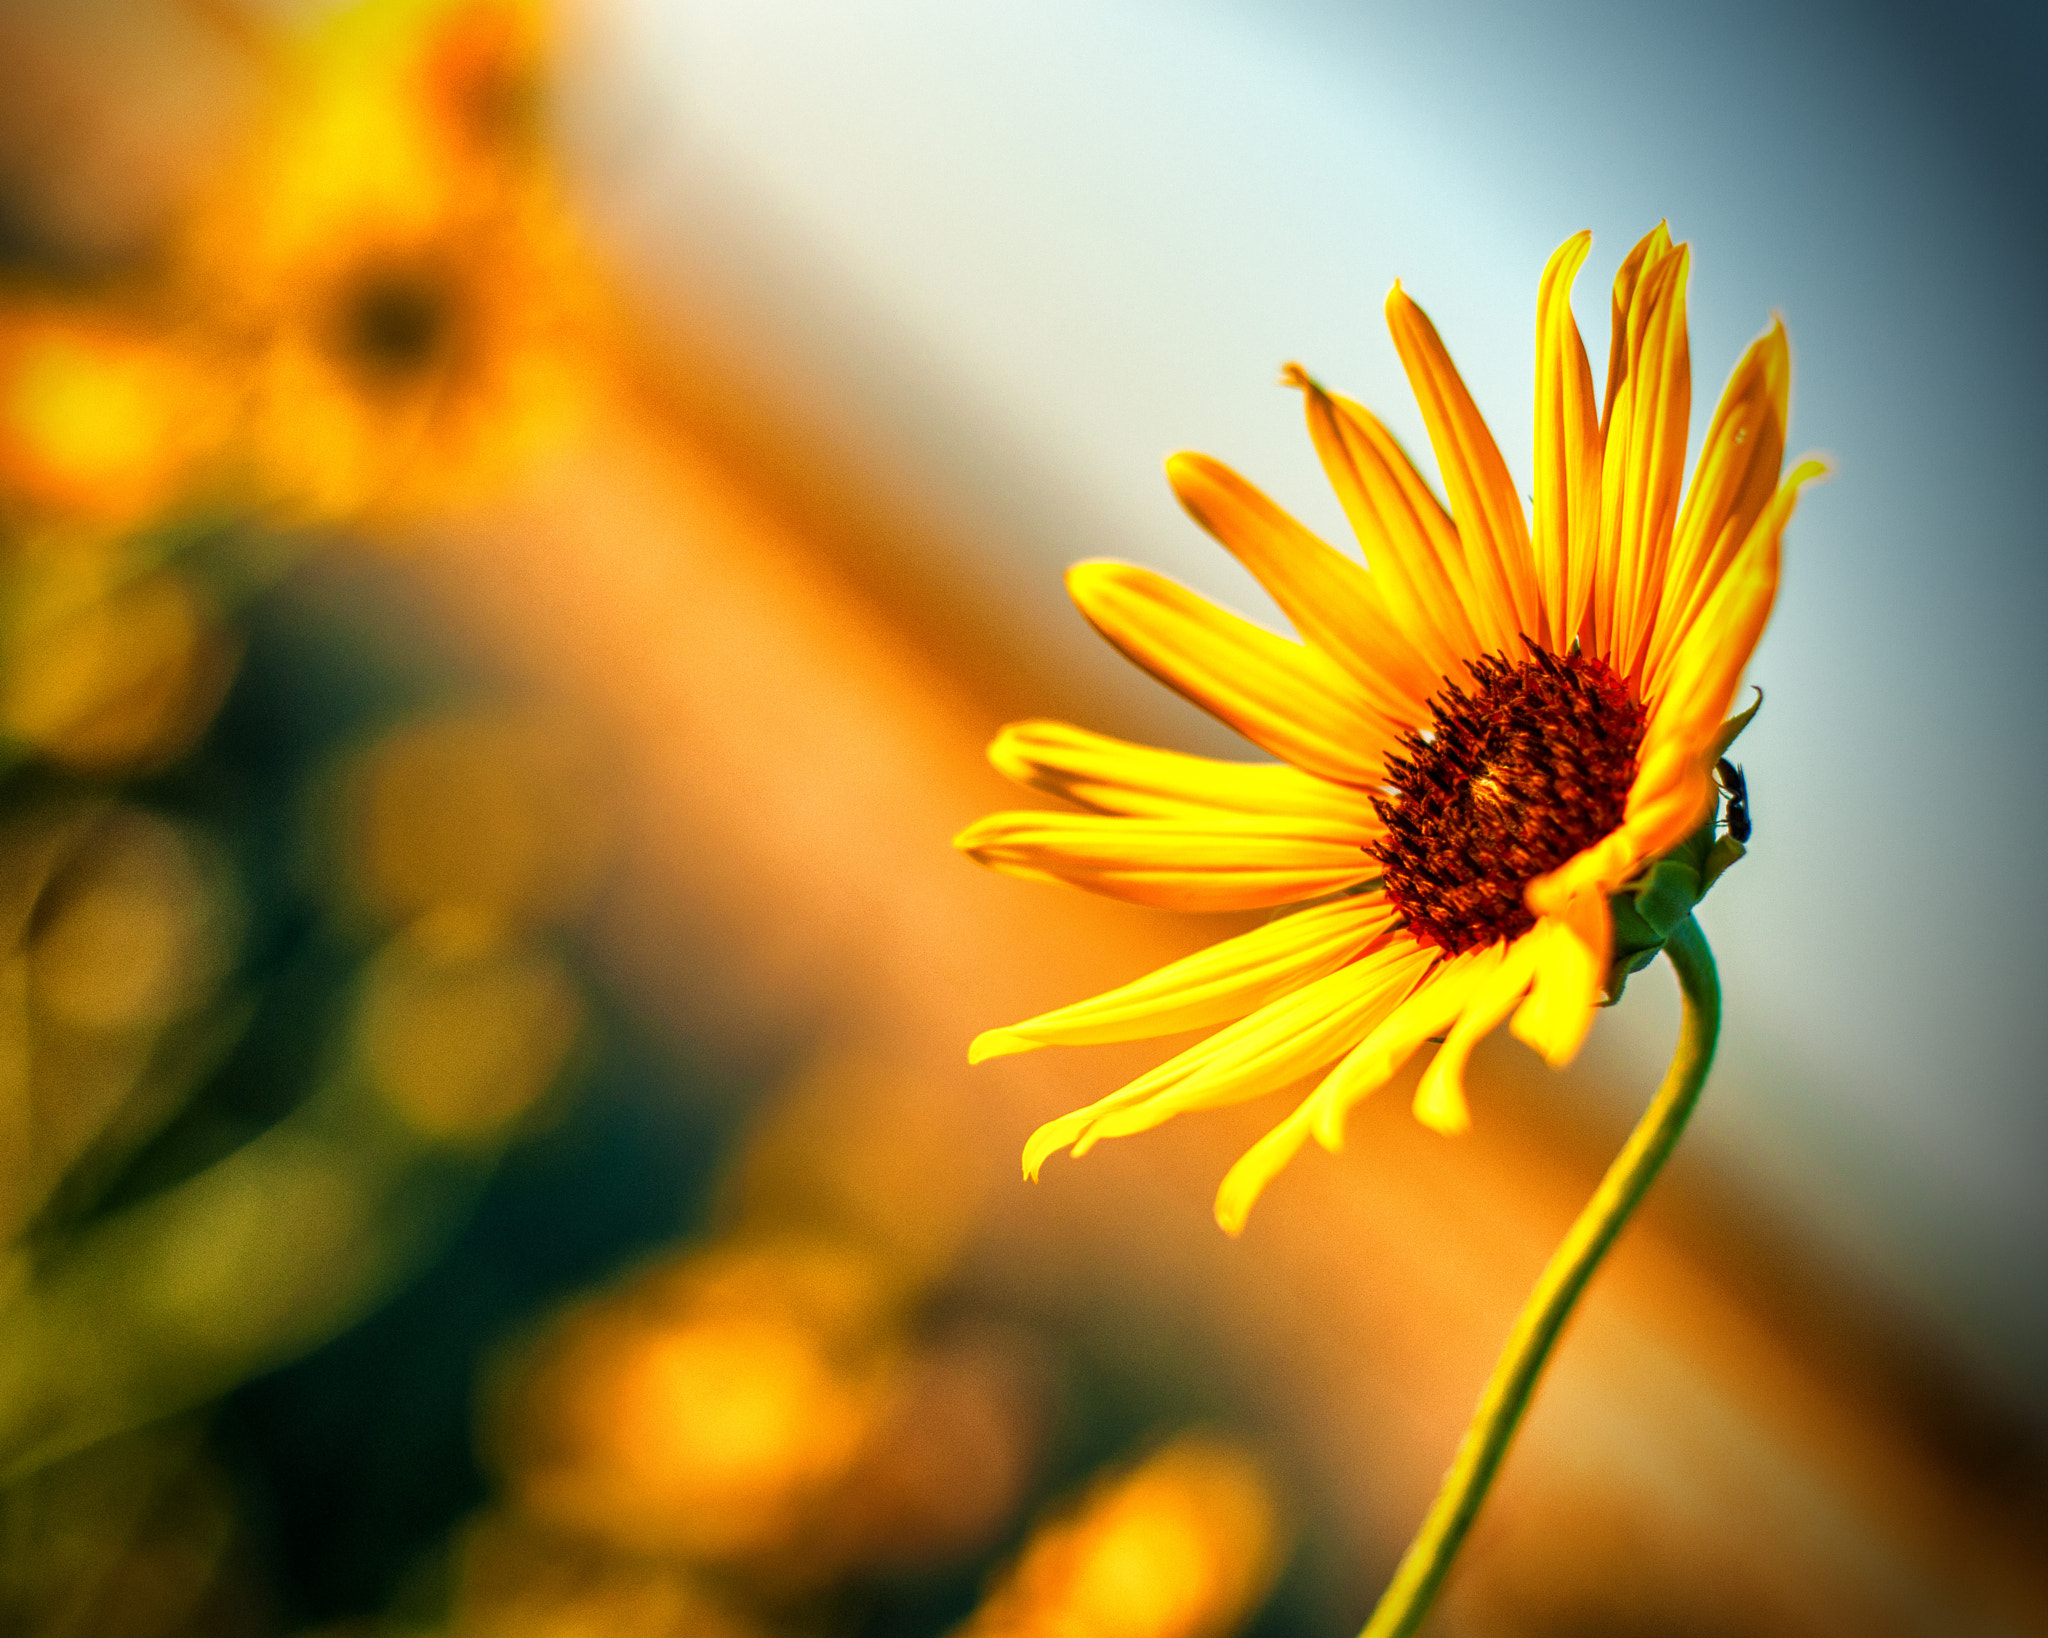 Photograph Kansas Flower by J. Rockwell on 500px